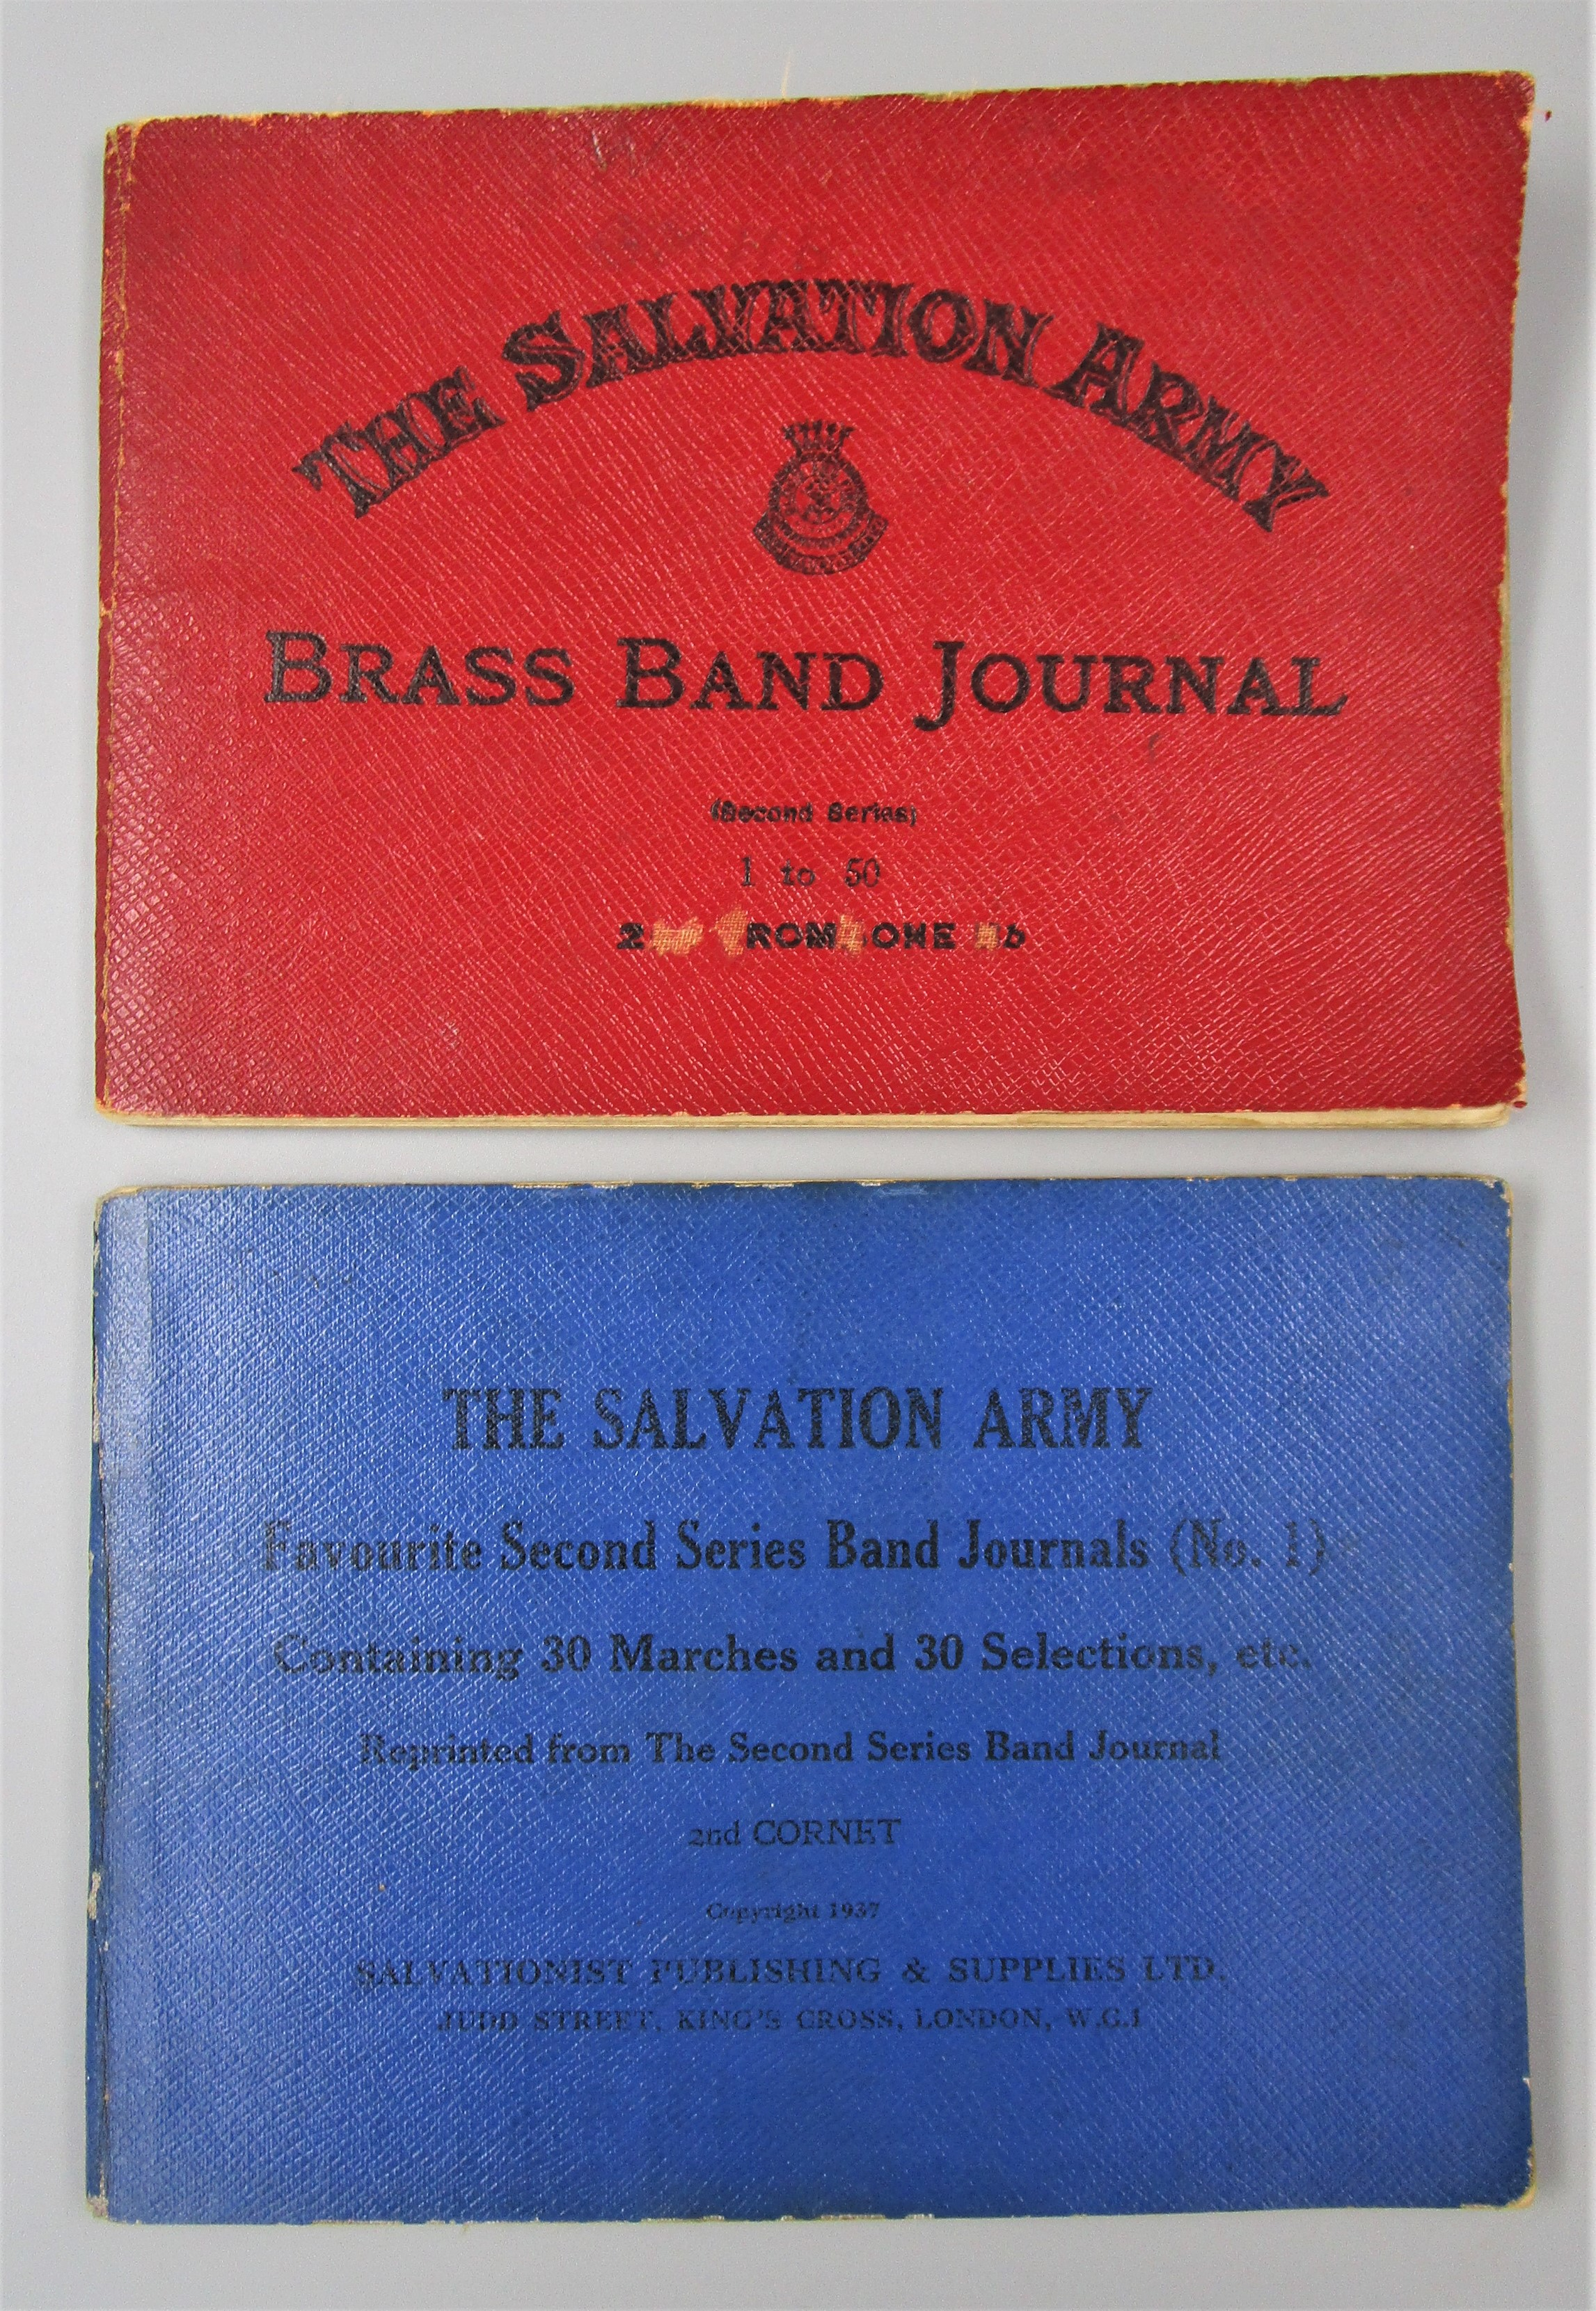 THE SALVATION ARMY BRASS BAND JOURNAL, by Salvationist Publishing - (1920s) [2 books]